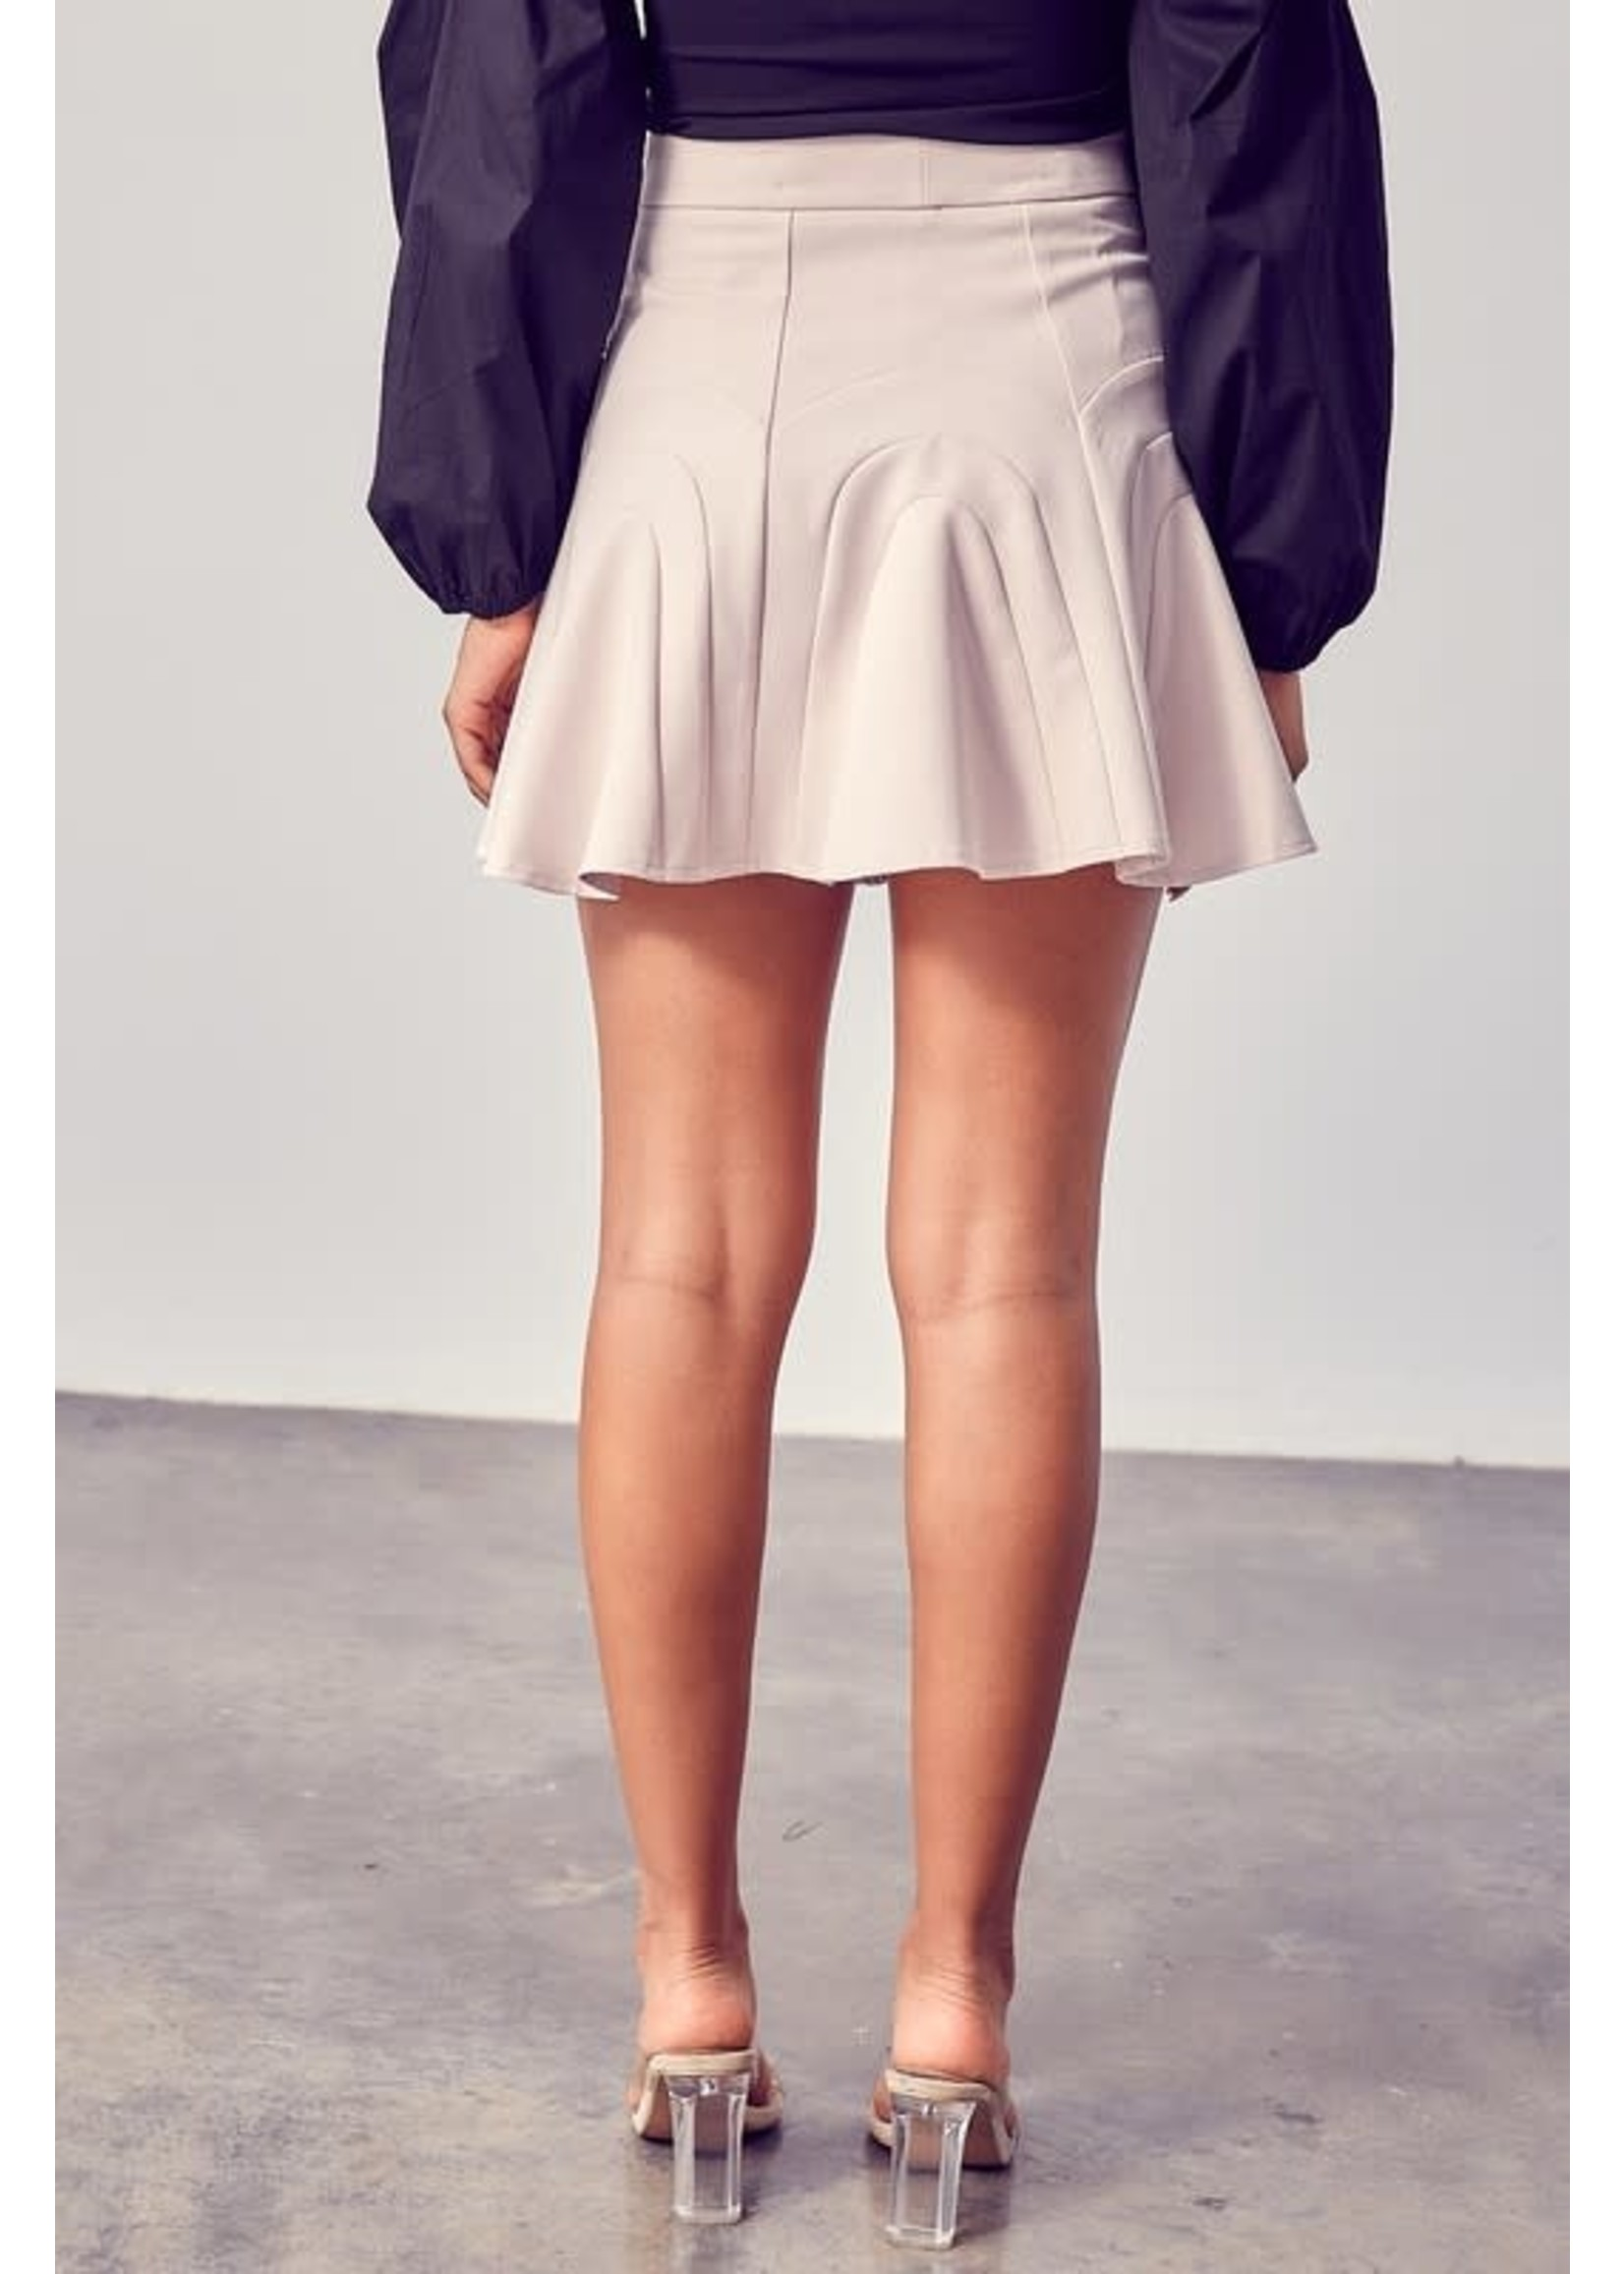 DO + BE A-Line Detailed Mini Skirt - Y20086